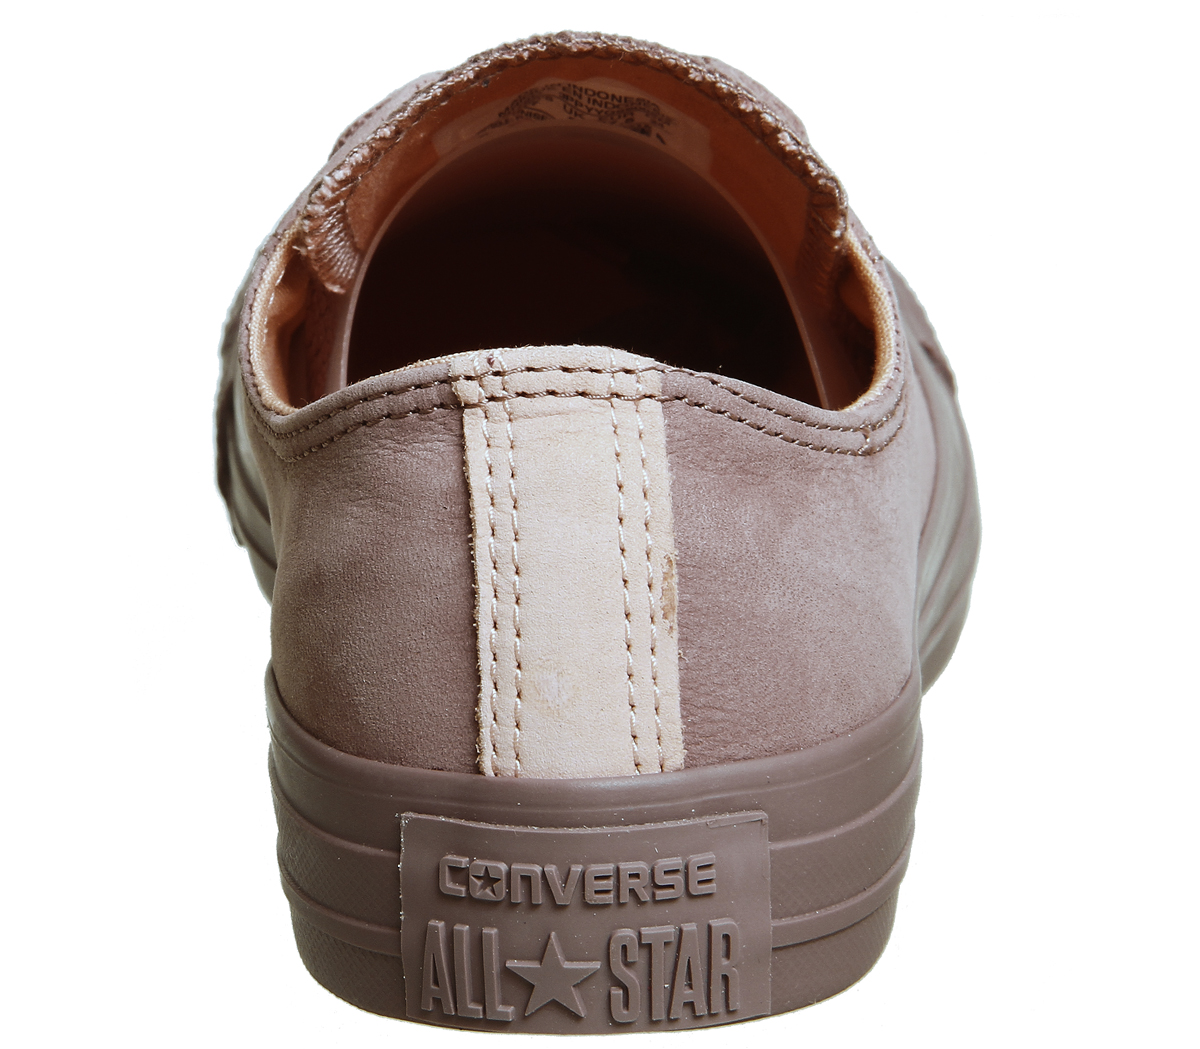 d0bec648f1cc6c Womens Converse All Star Low Leather Saddle Pale Coral Trainers ...